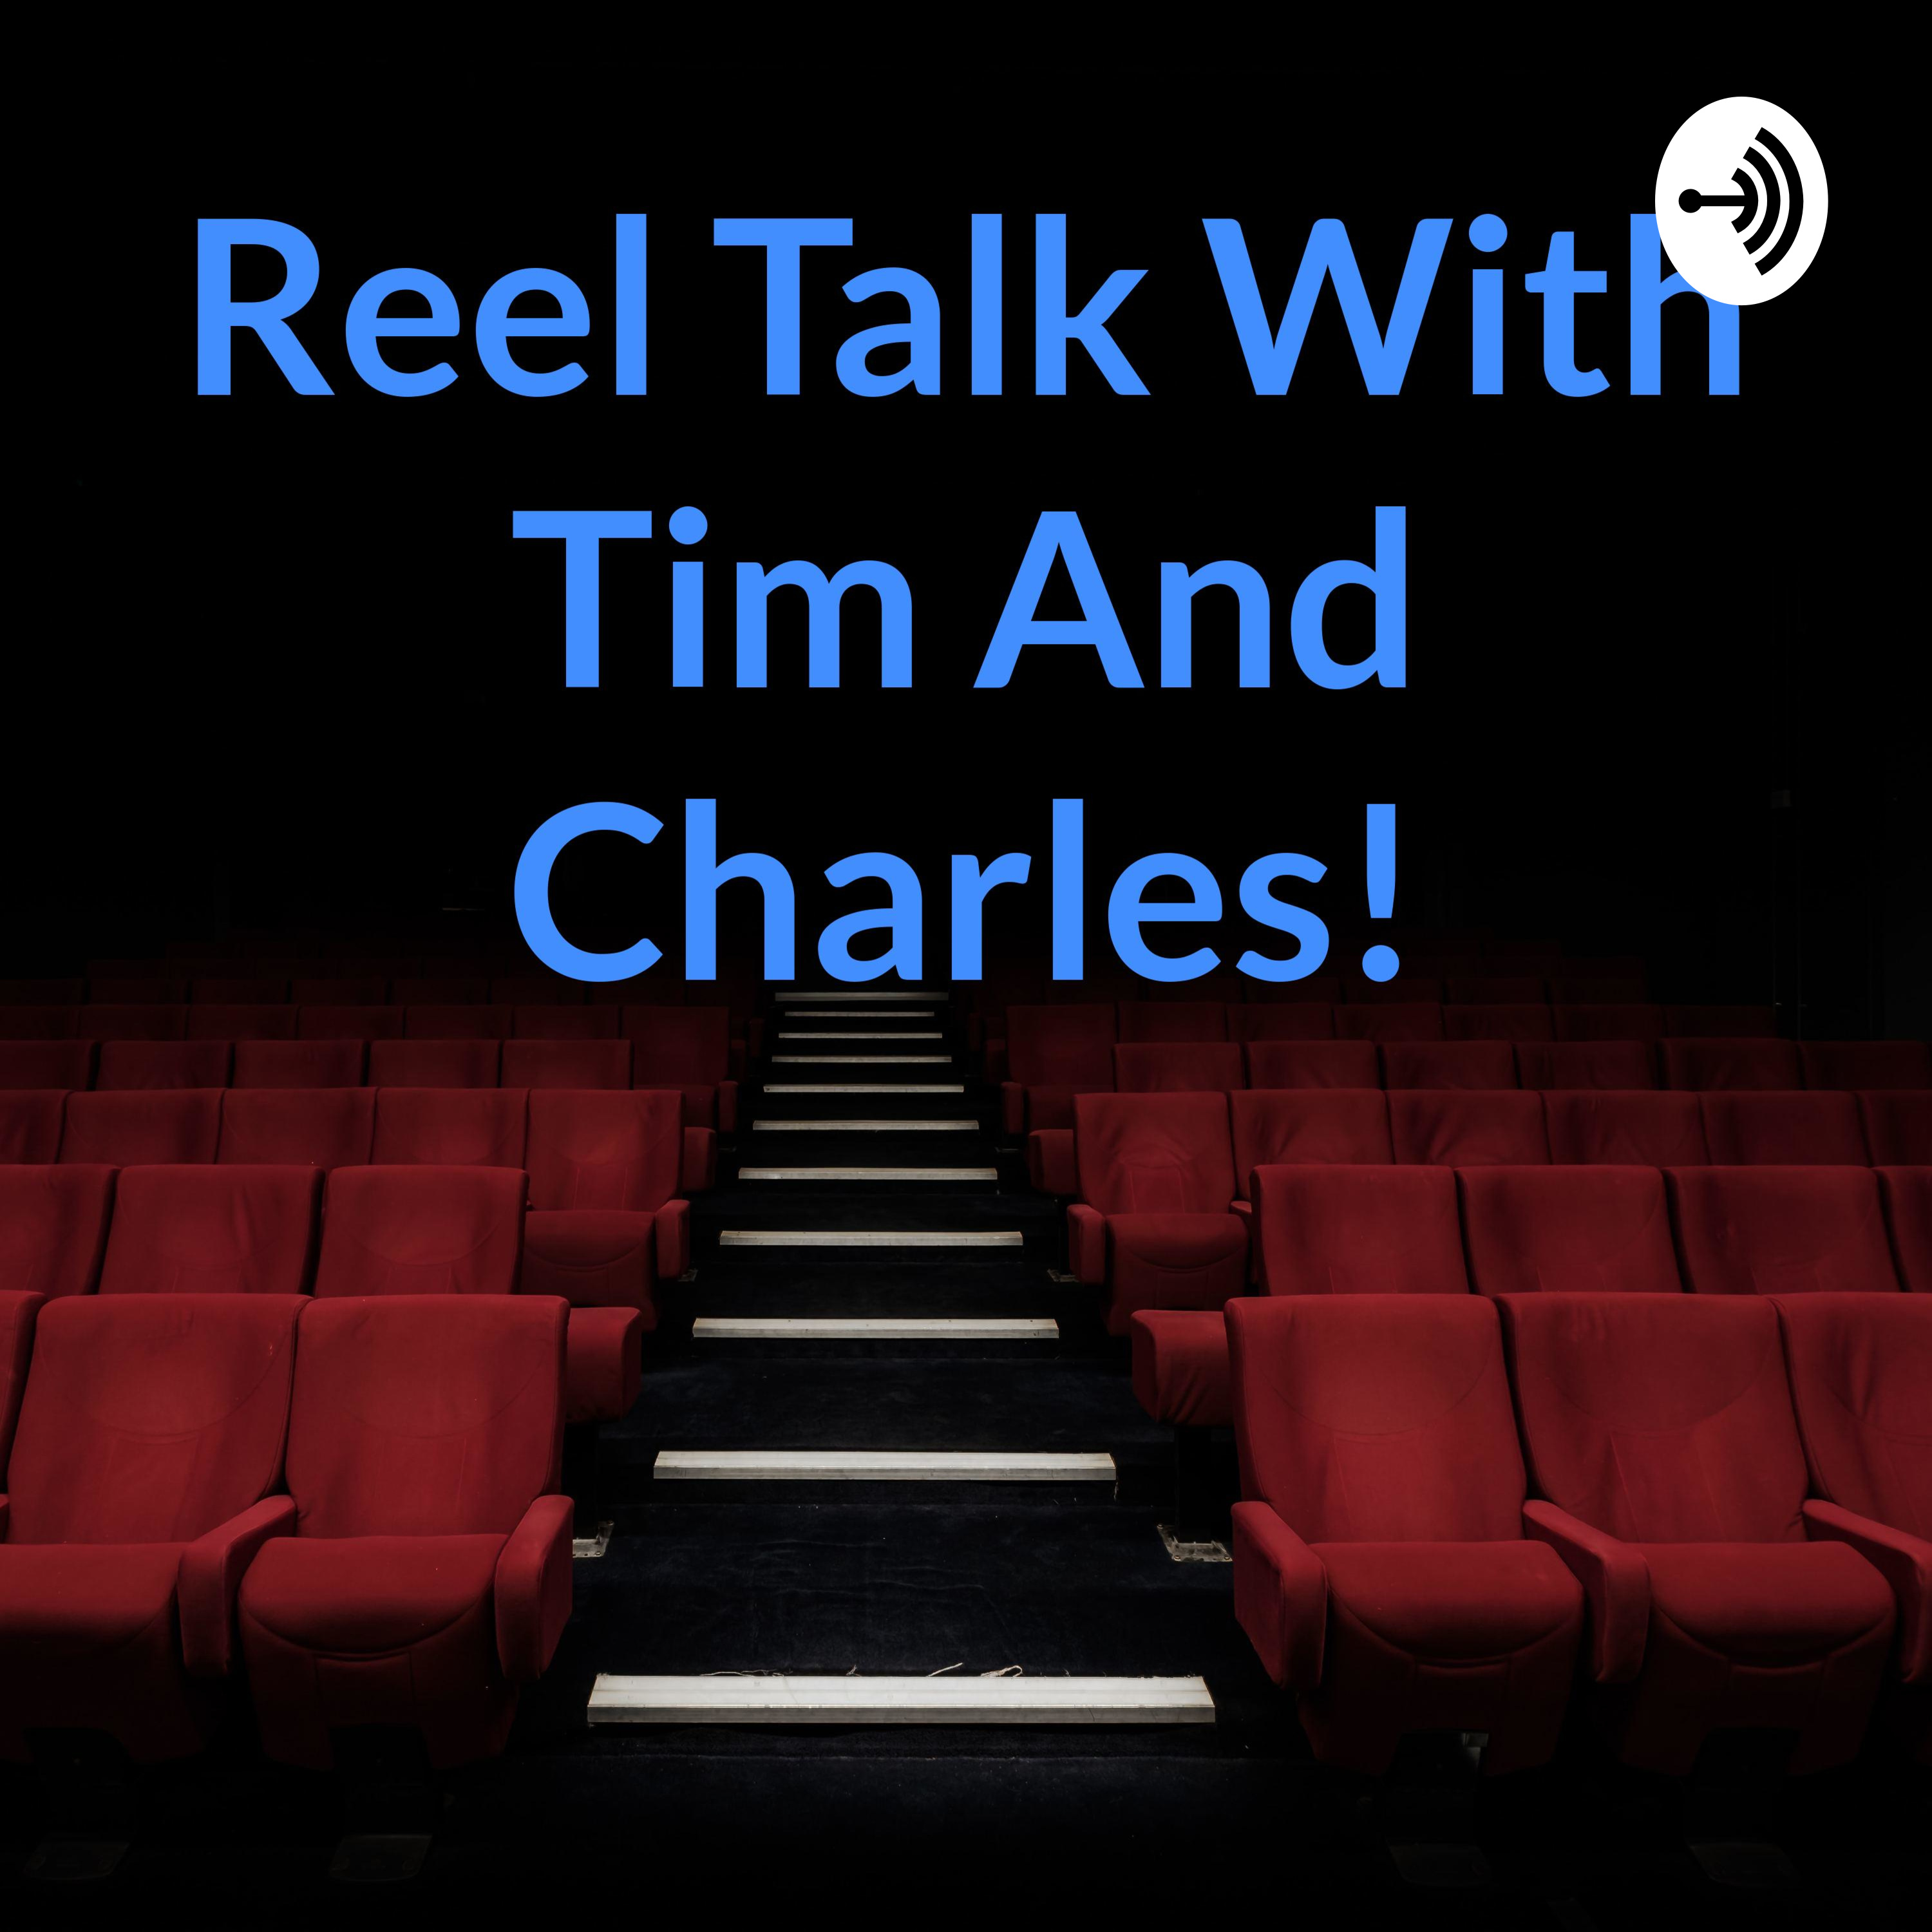 Reel Talk With Tim And Charles!